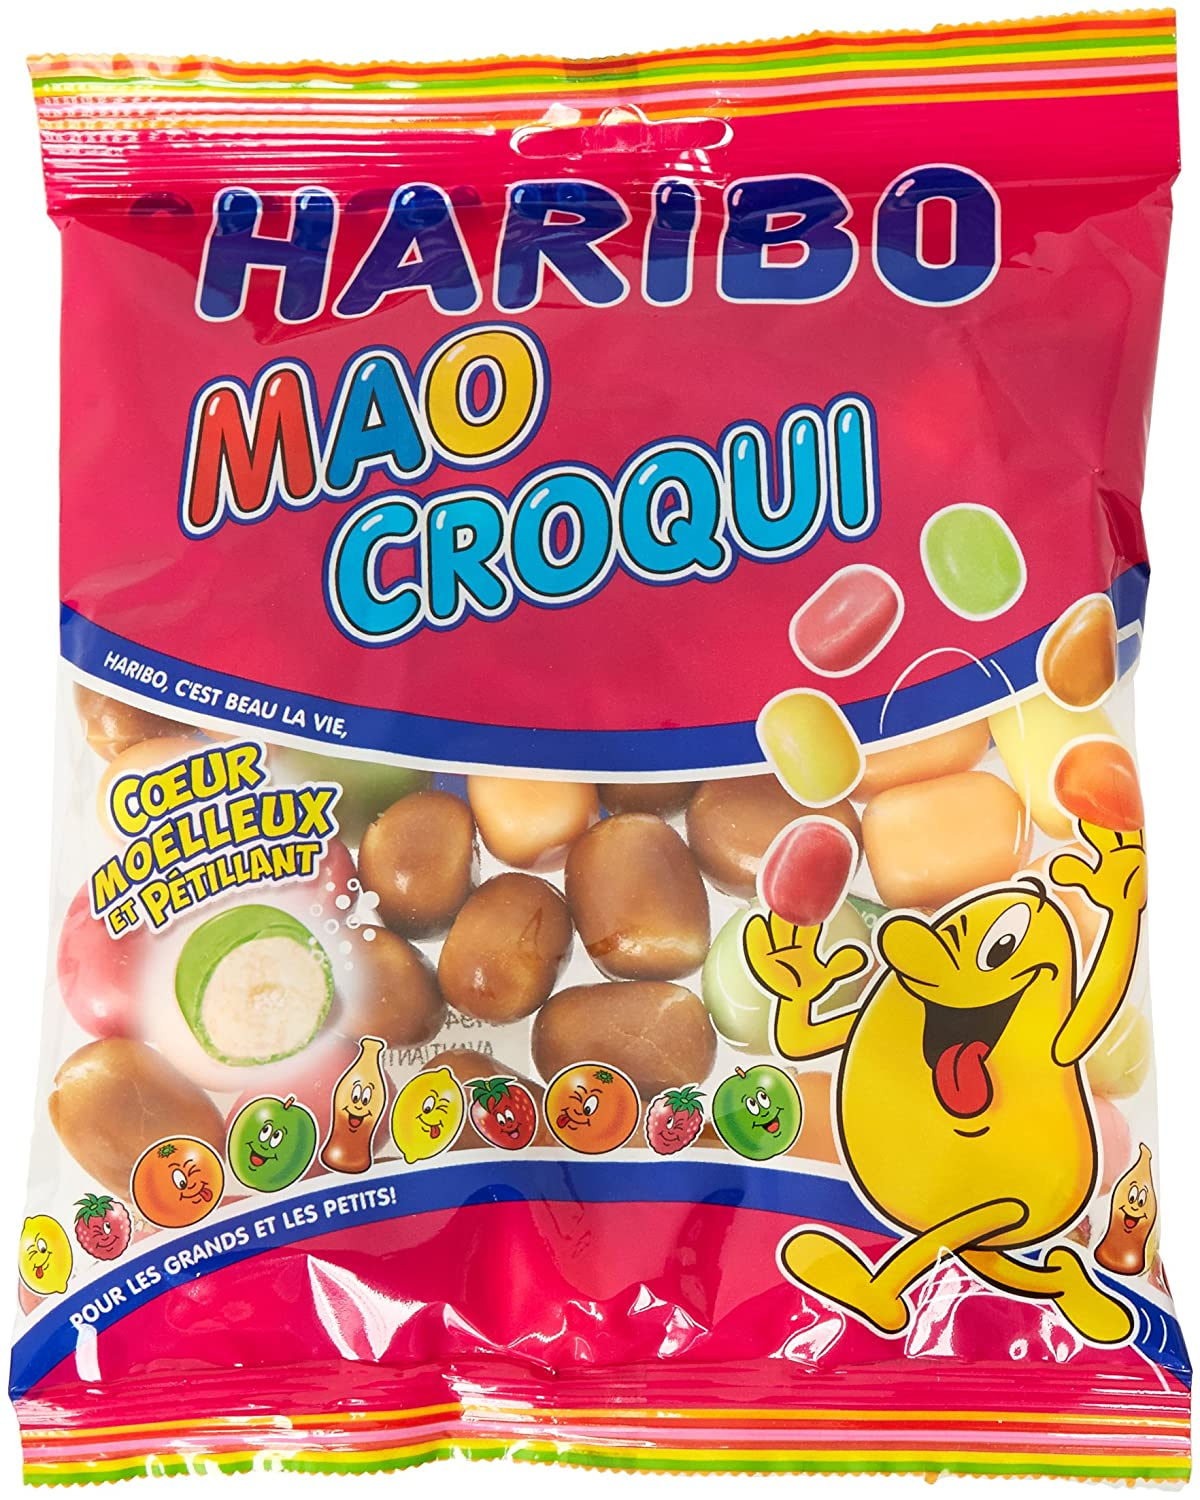 Haribo Mao Croqui Grocery Gourmet Food Baby Music Cellular Phone